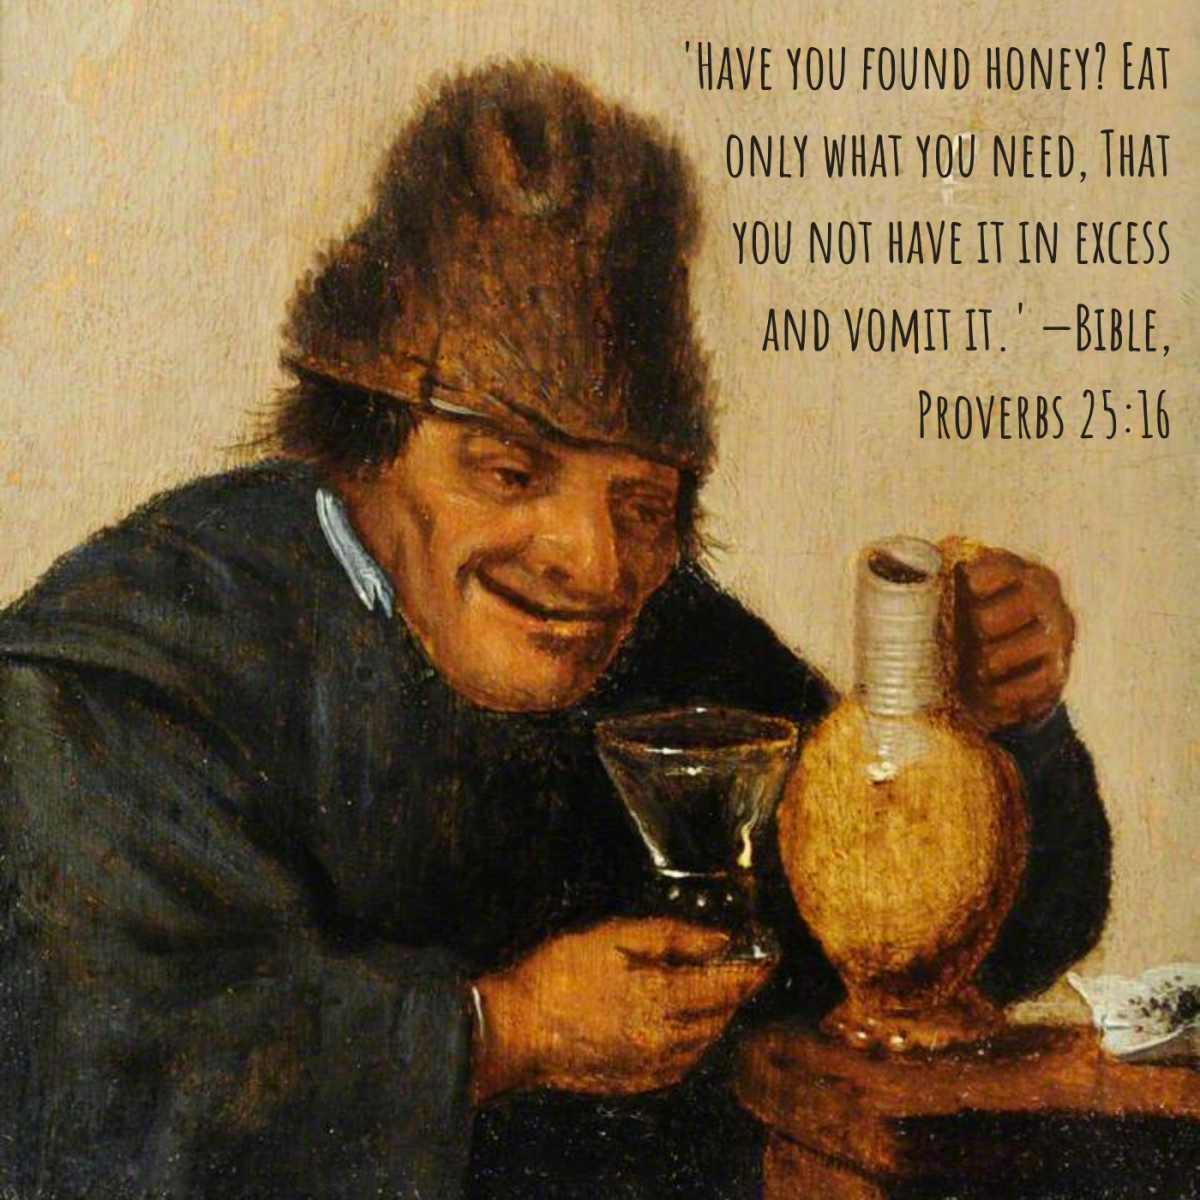 'Have you found honey? Eat only what you need, That you not have it in excess and vomit it.' —Bible, Proverbs 25:16